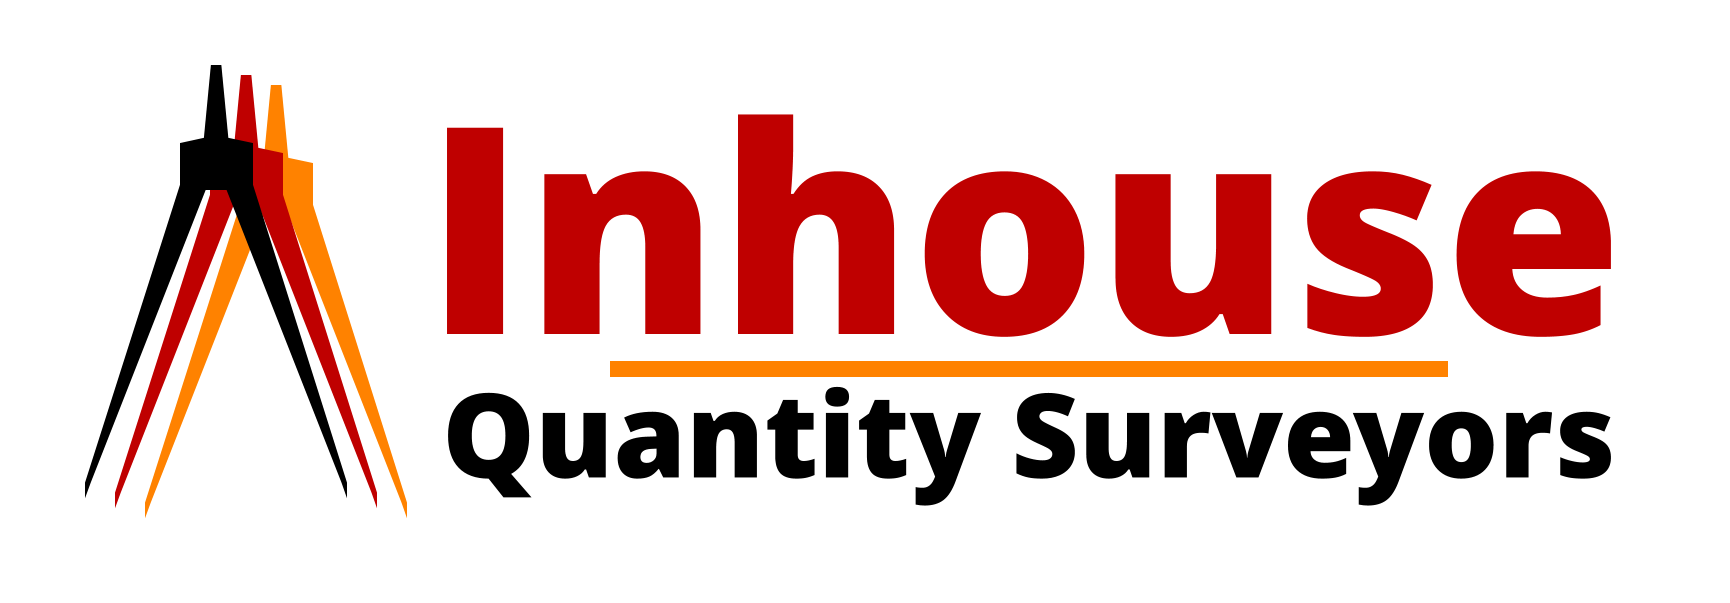 Details : Quantity Surveyors | Durban Quantity Surveyors | Quantity Surveying in Durban | Inhouse Quantity Surveyors